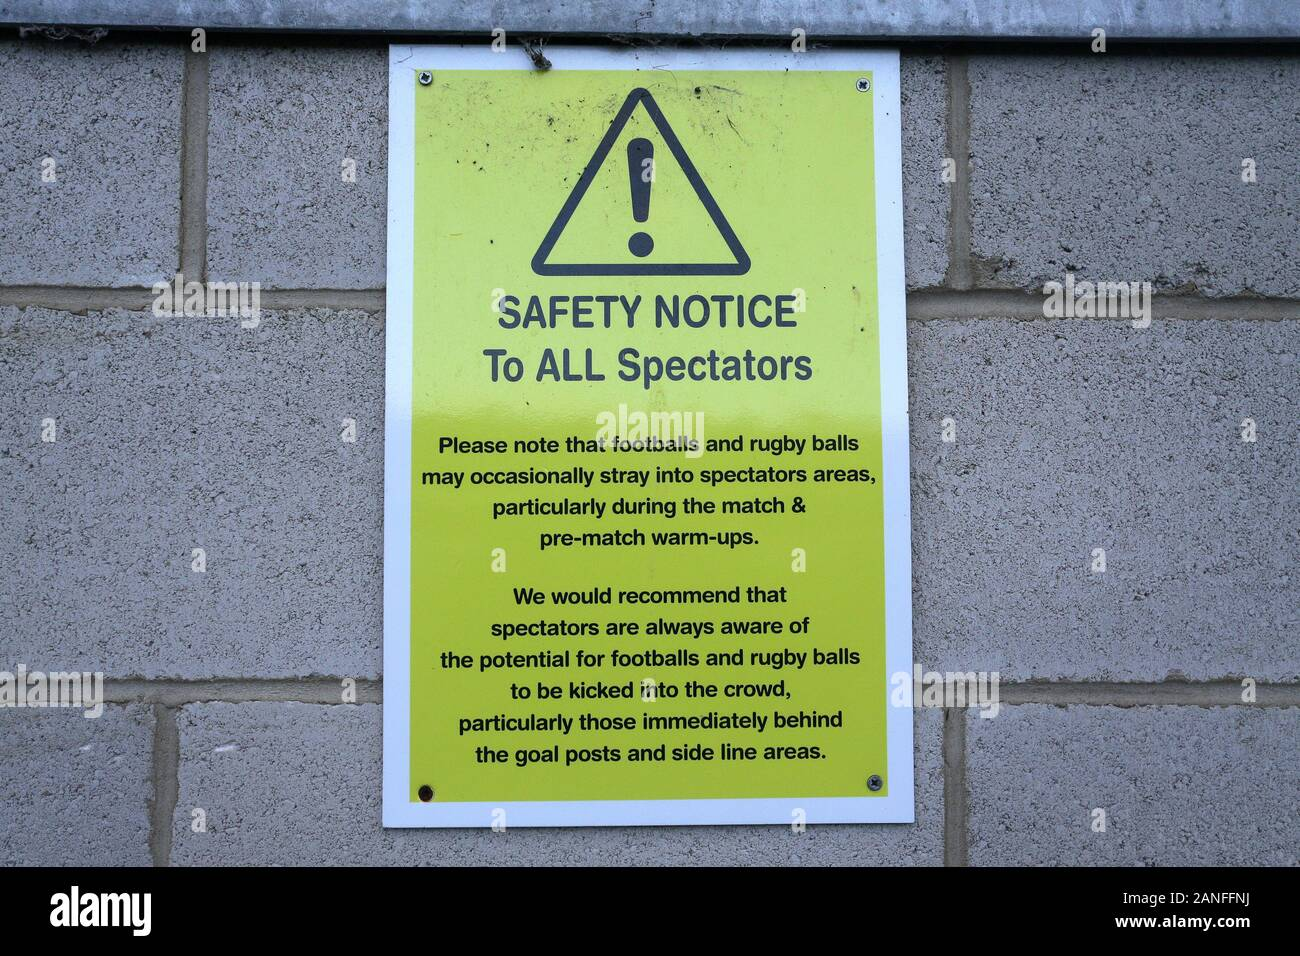 Safety Notice signage ahead of Reading FC Women vs Arsenal Women, Barclays FA Women's Super League Football at Adams Park on 8th December 2019 Stock Photo